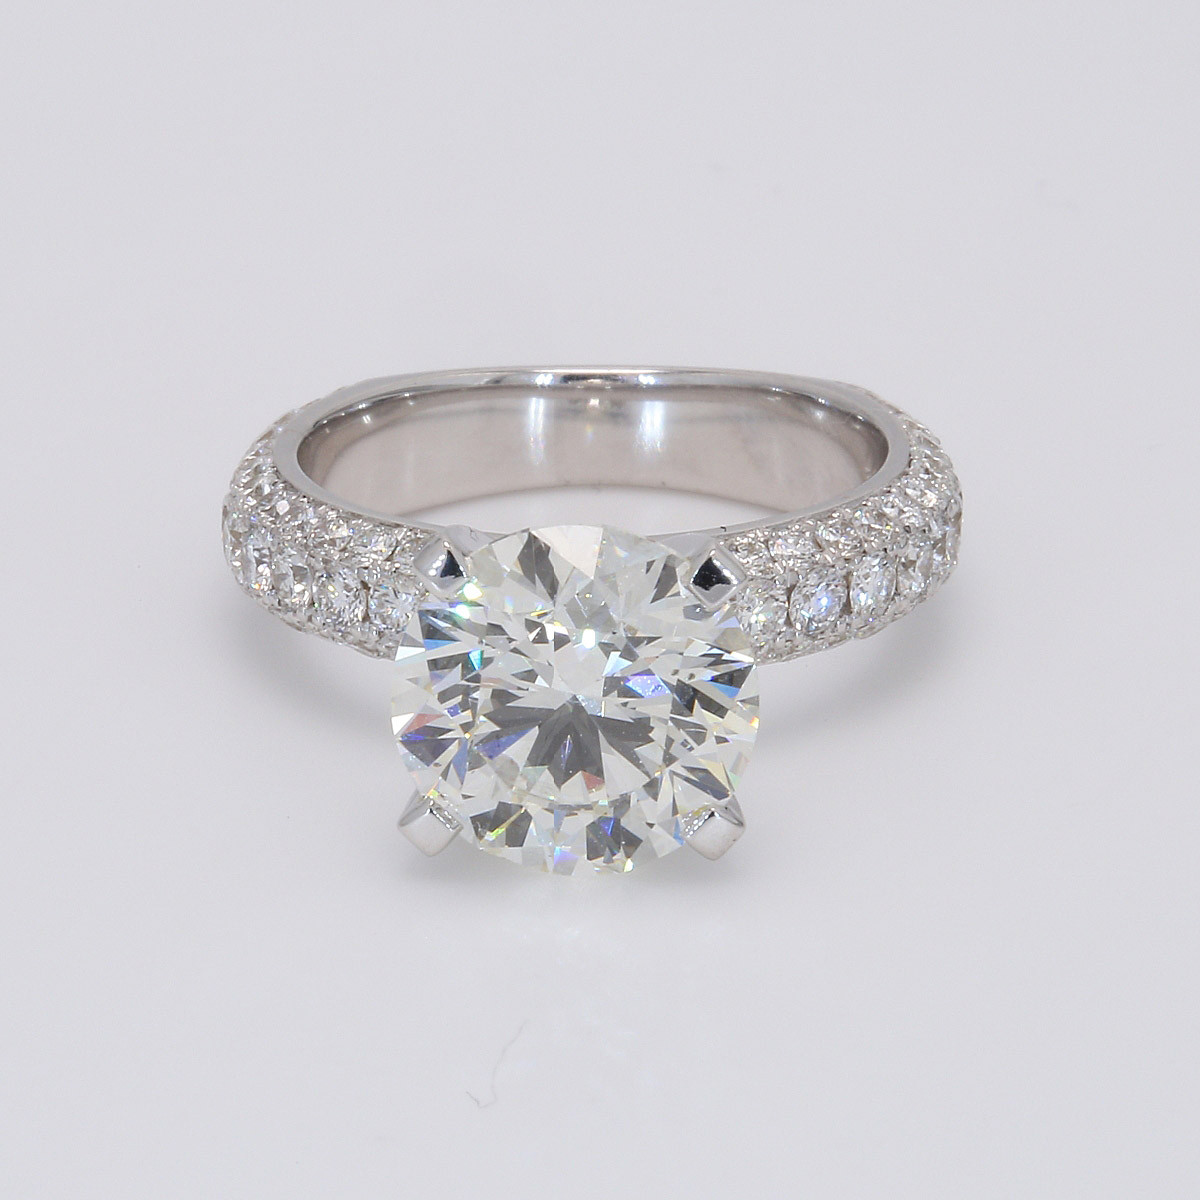 3.53CT Round Brilliant Micro Pave 18K Engagement Ring White Gold